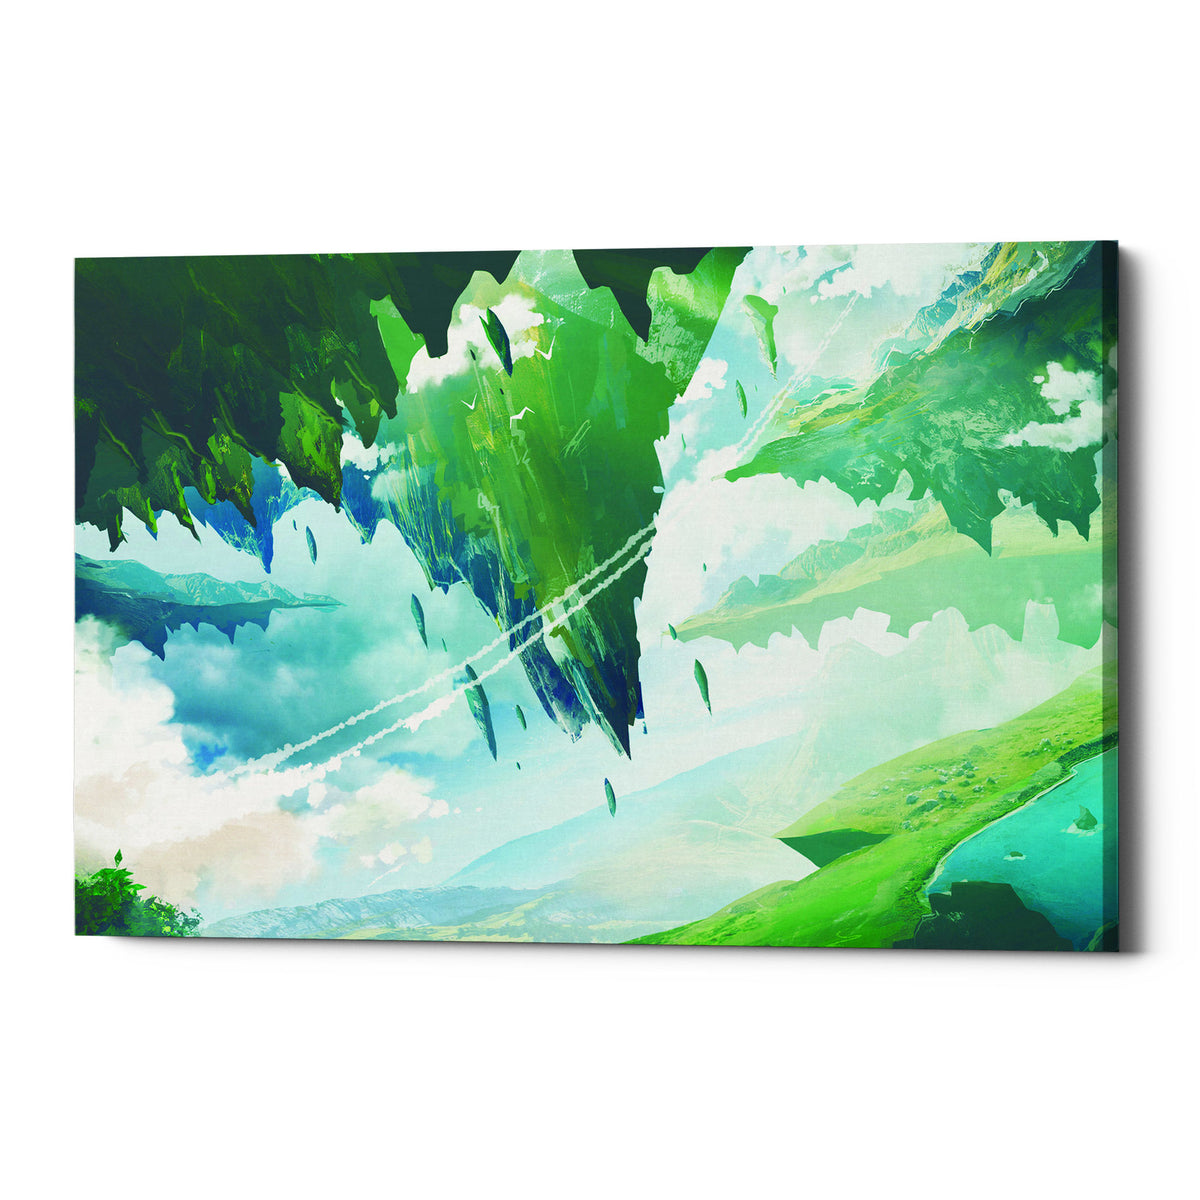 "Epic Graffiti ""Floating Island"" by Jonathan Lam, Giclee Canvas Wall Art"